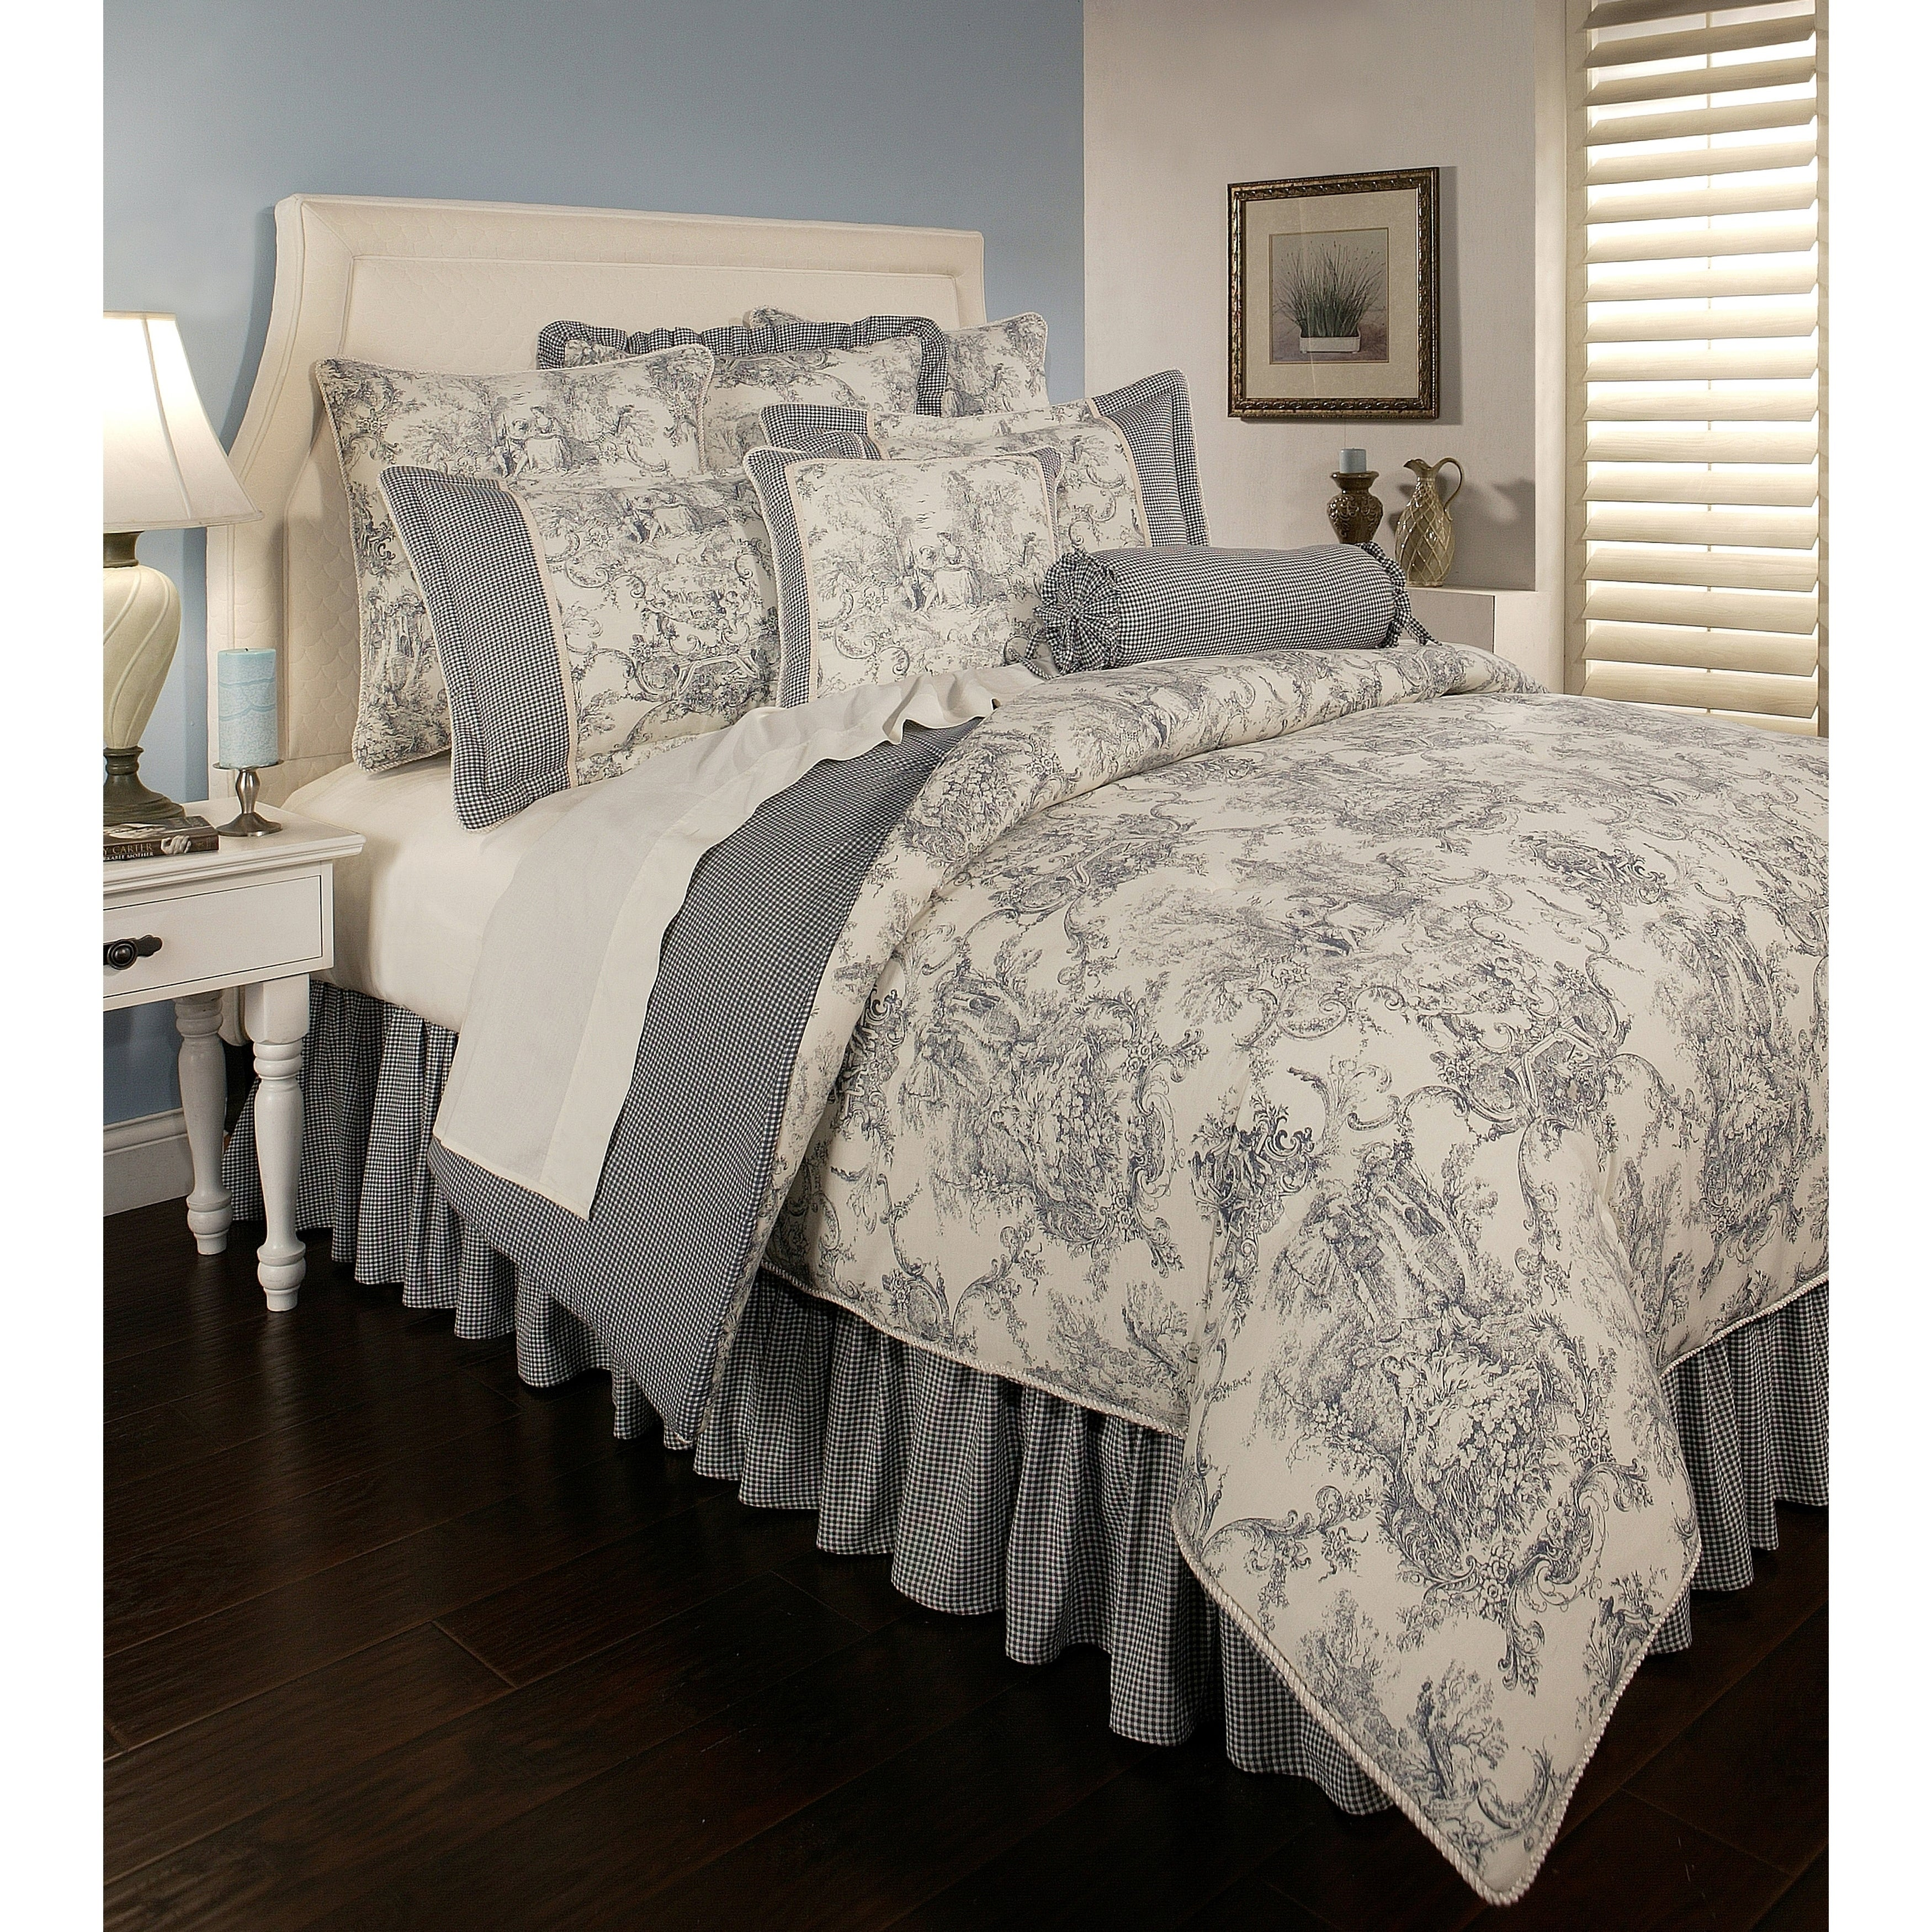 Shop Pchf Country Toile Blue 3 Piece Duvet Set Overstock 23145493